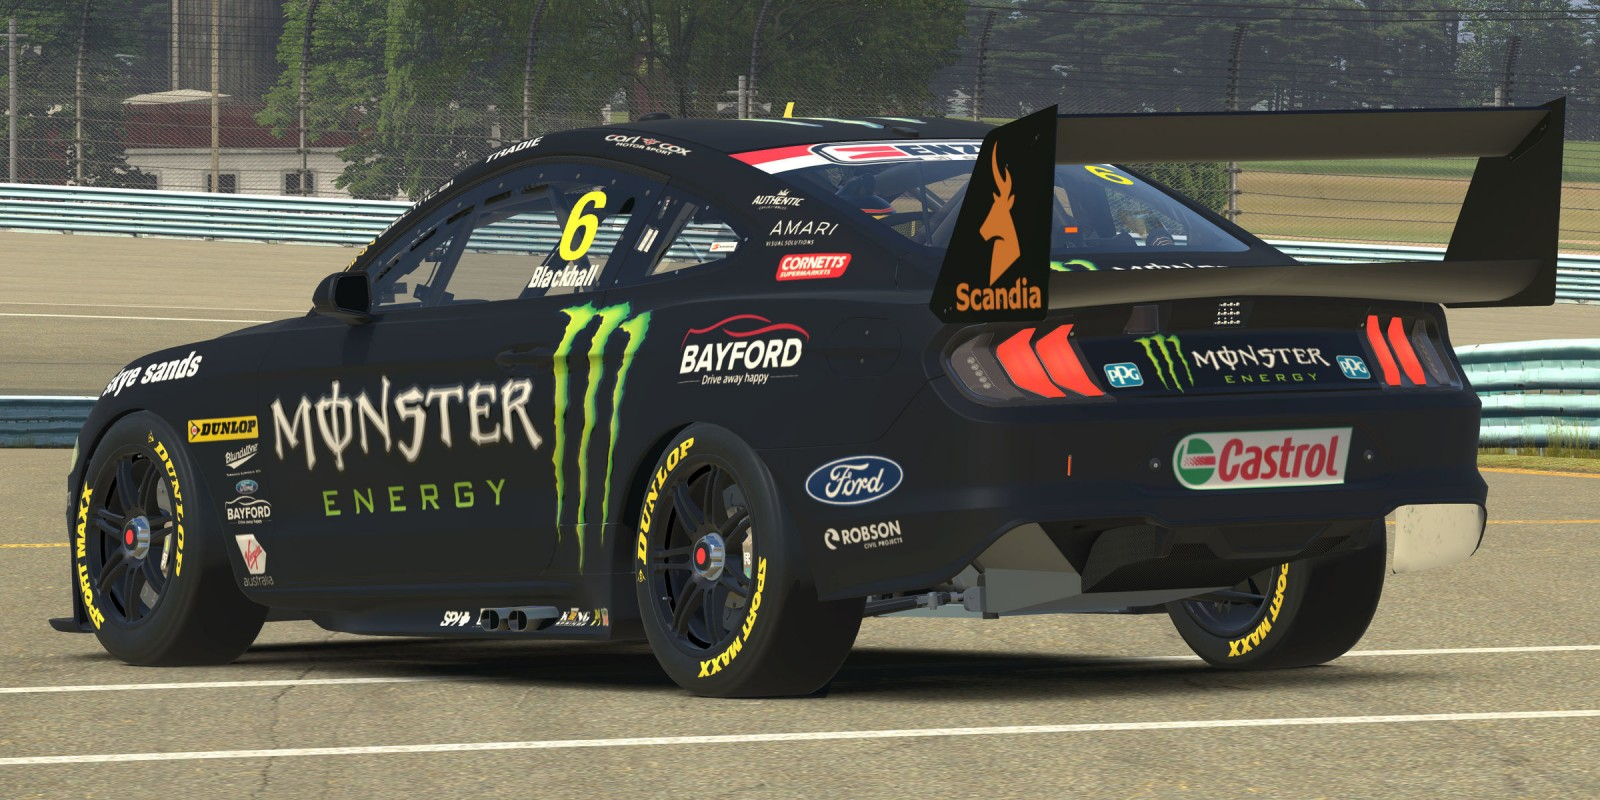 Monster Mustang in the Supercars E-Series during COVID19